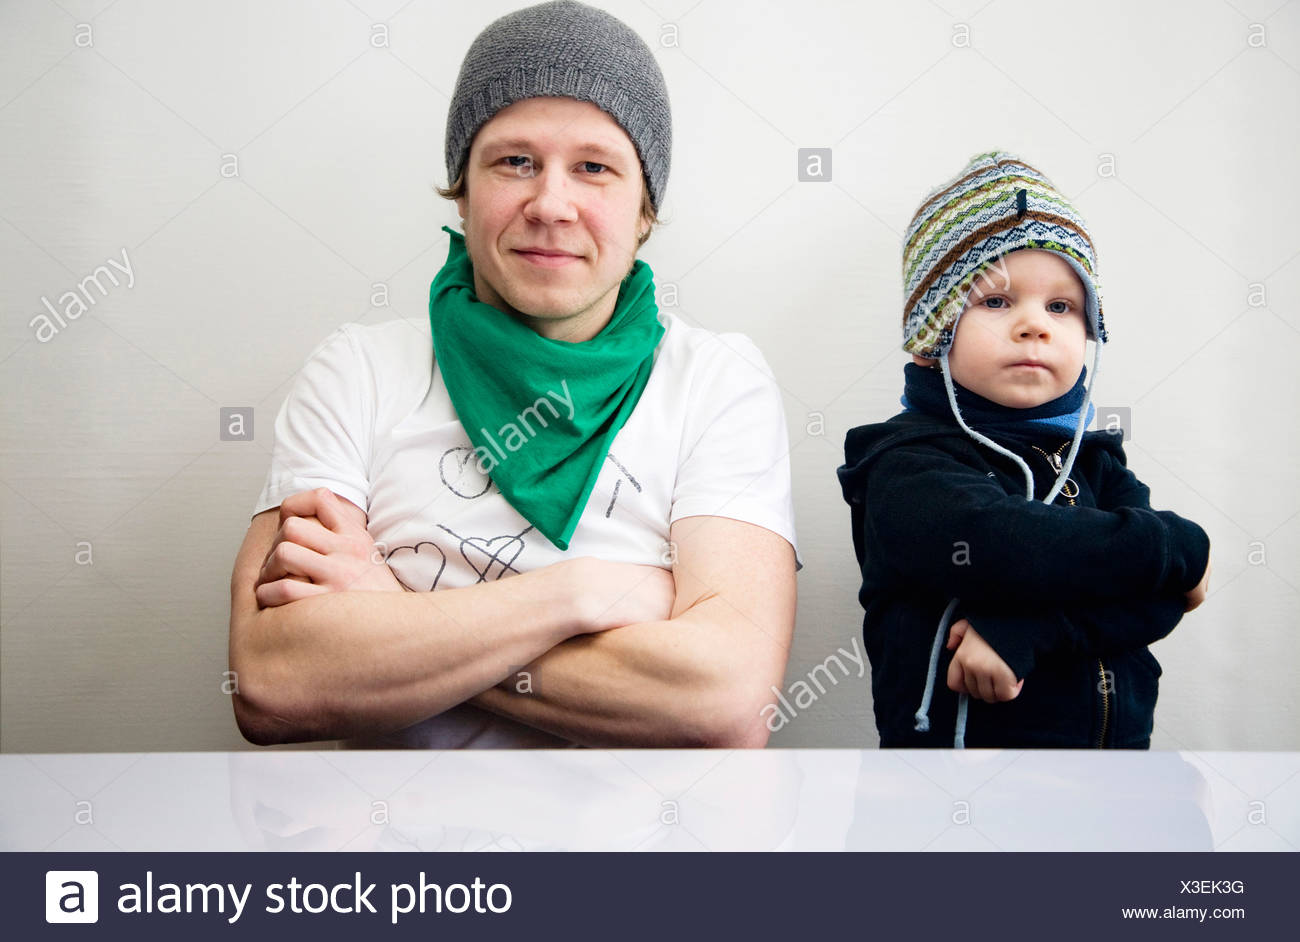 Father and son with folded arms sitting at a table, Germany - Stock Image